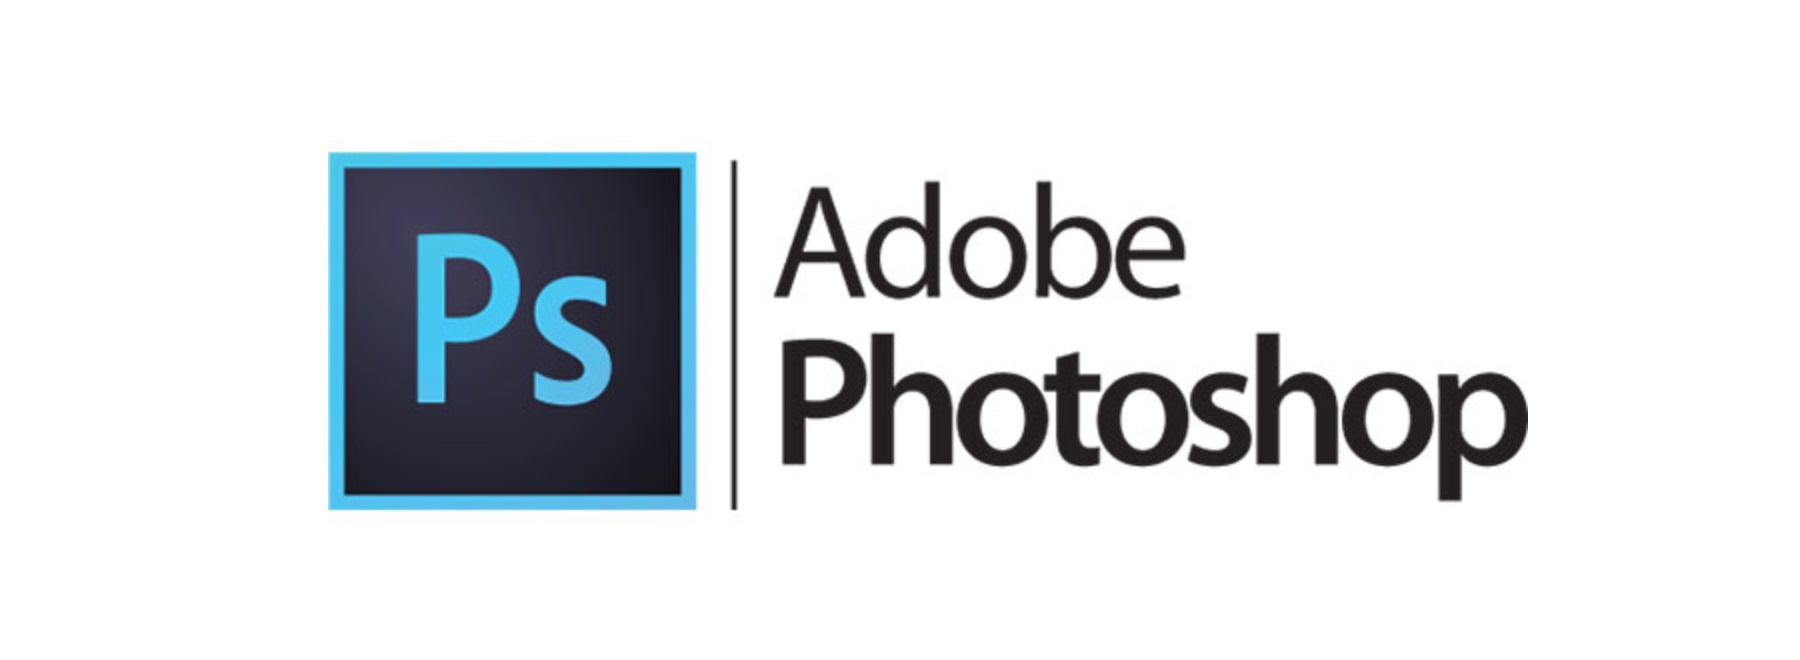 Adobe Photoshop CC Crack 2020 Serial Key Free Download With Torrent